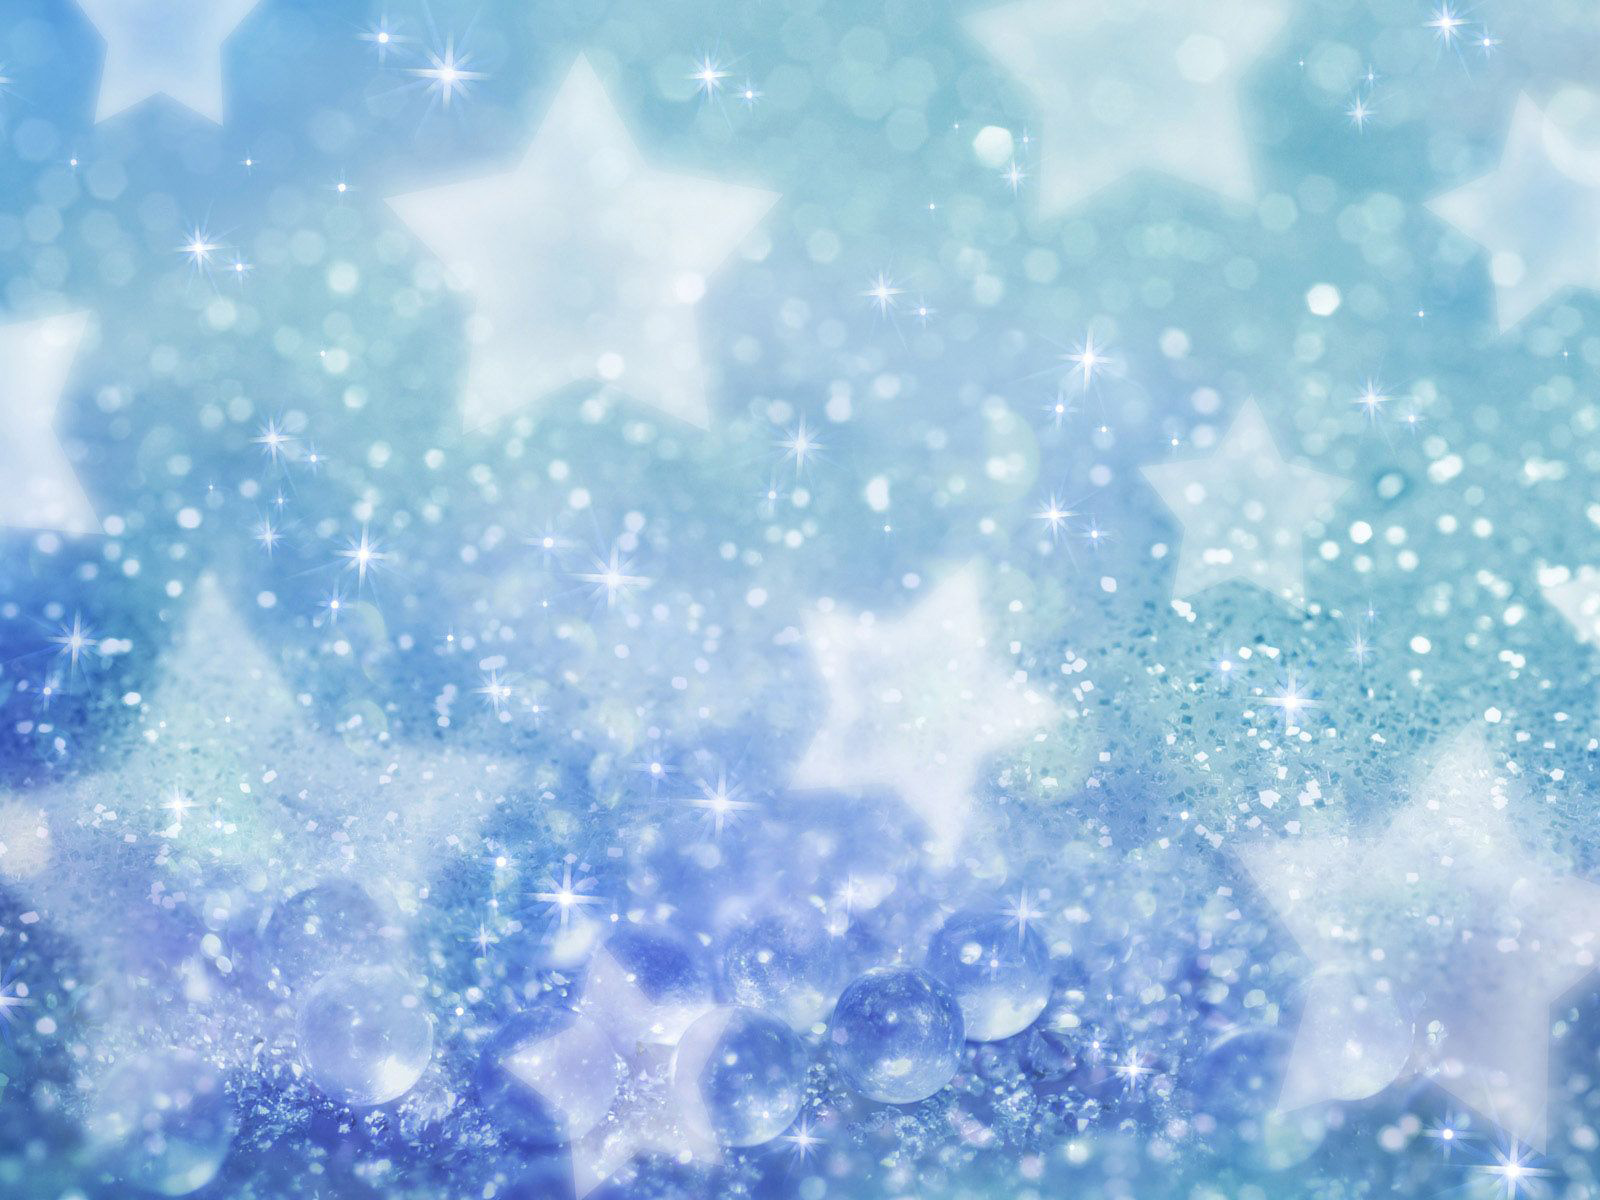 Blue Star Wallpaper HD Wallpaper Vector Designs Wallpapers 1600x1200